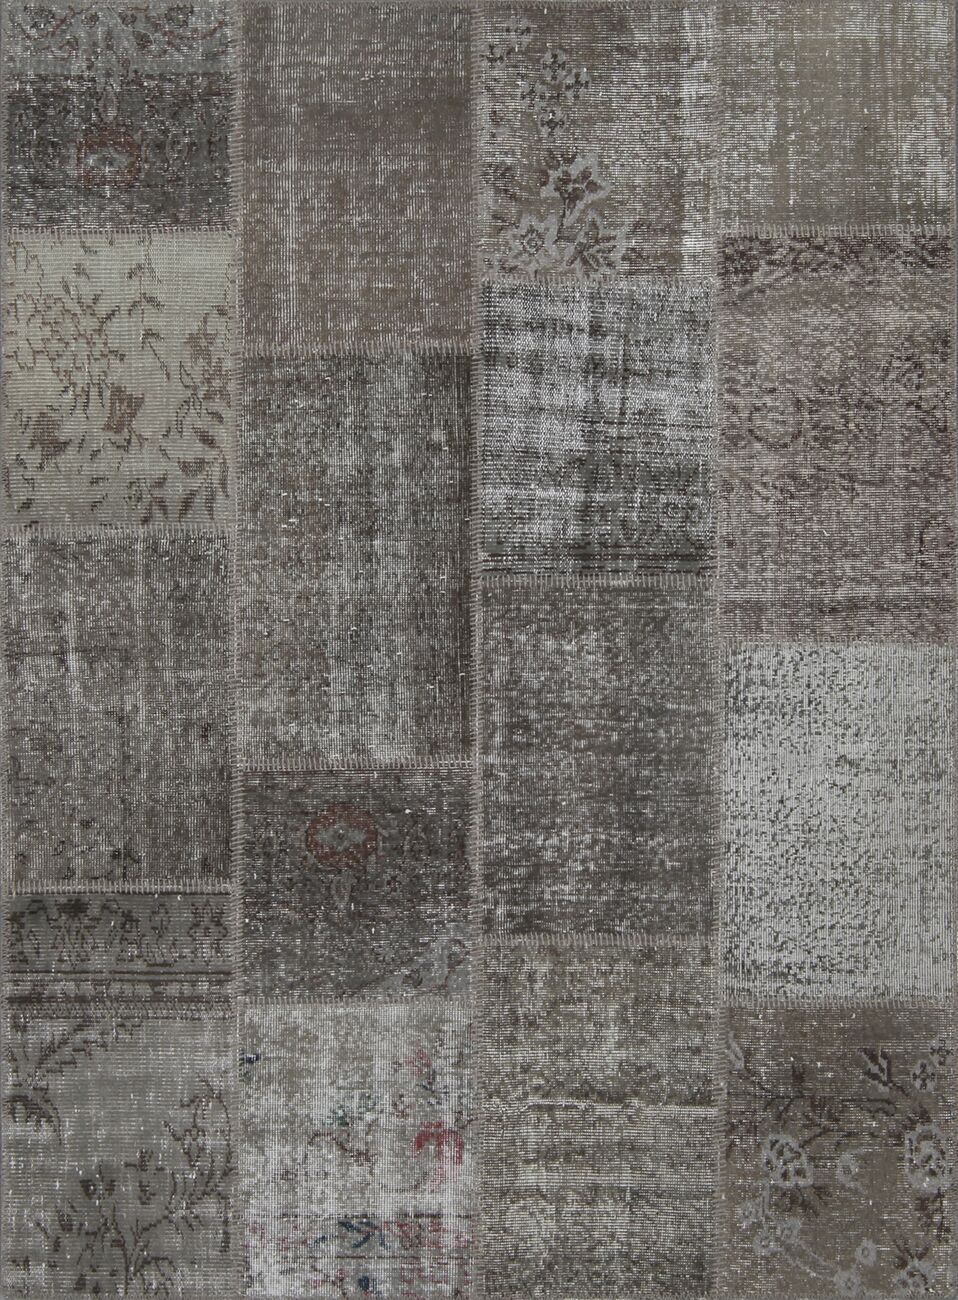 Aleta Antique Patchwork Hand-Knotted Gray Area Rug Rug Size: Rectangle 5'3